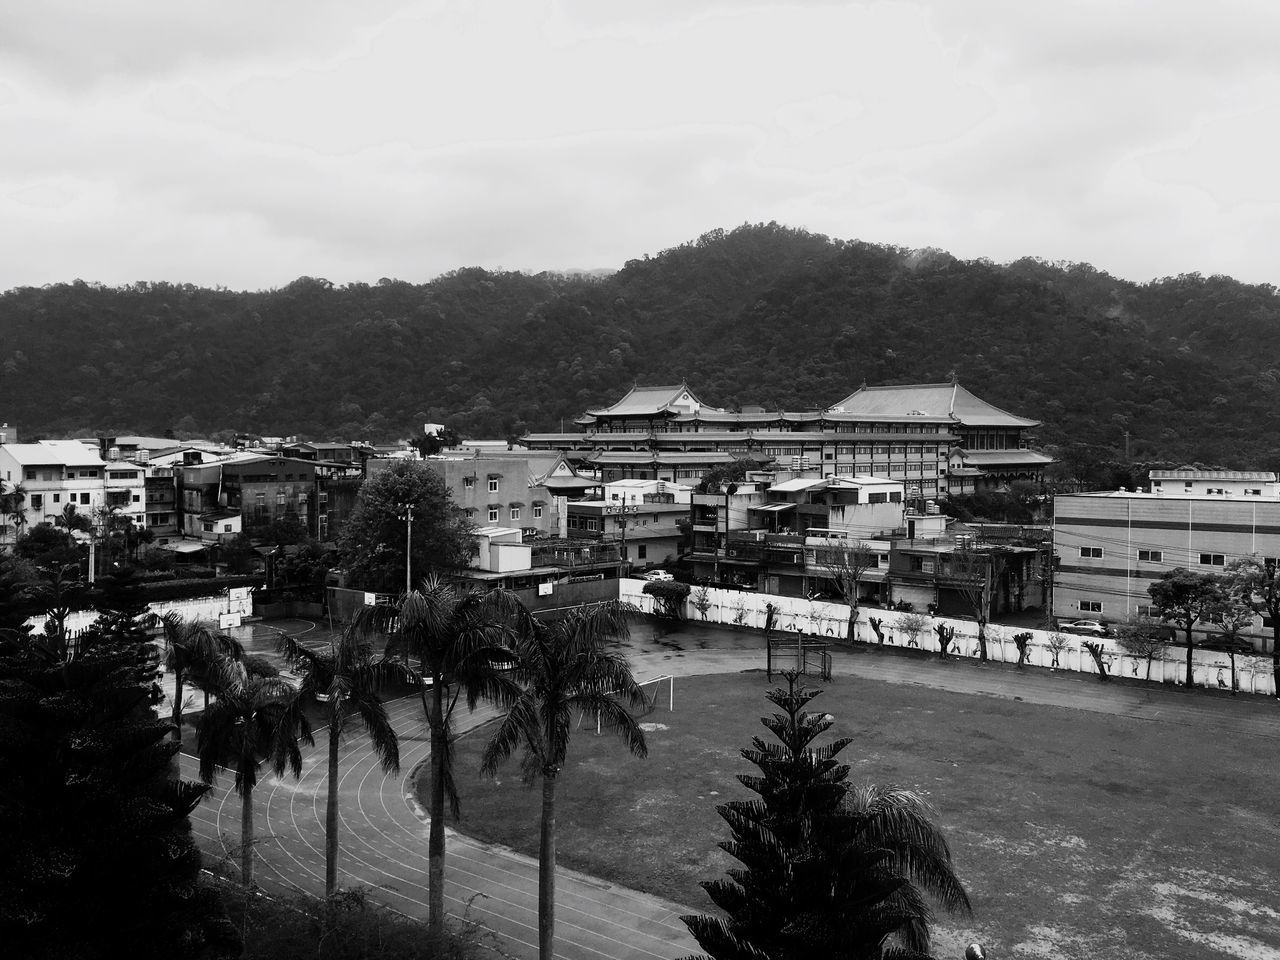 High school 。 EyeEm Gallery EyeEm Best Shots - Black + White The Tourist Taking Photos Hello World Everything In Its Place Tree Mountain View Temple School Sanxia